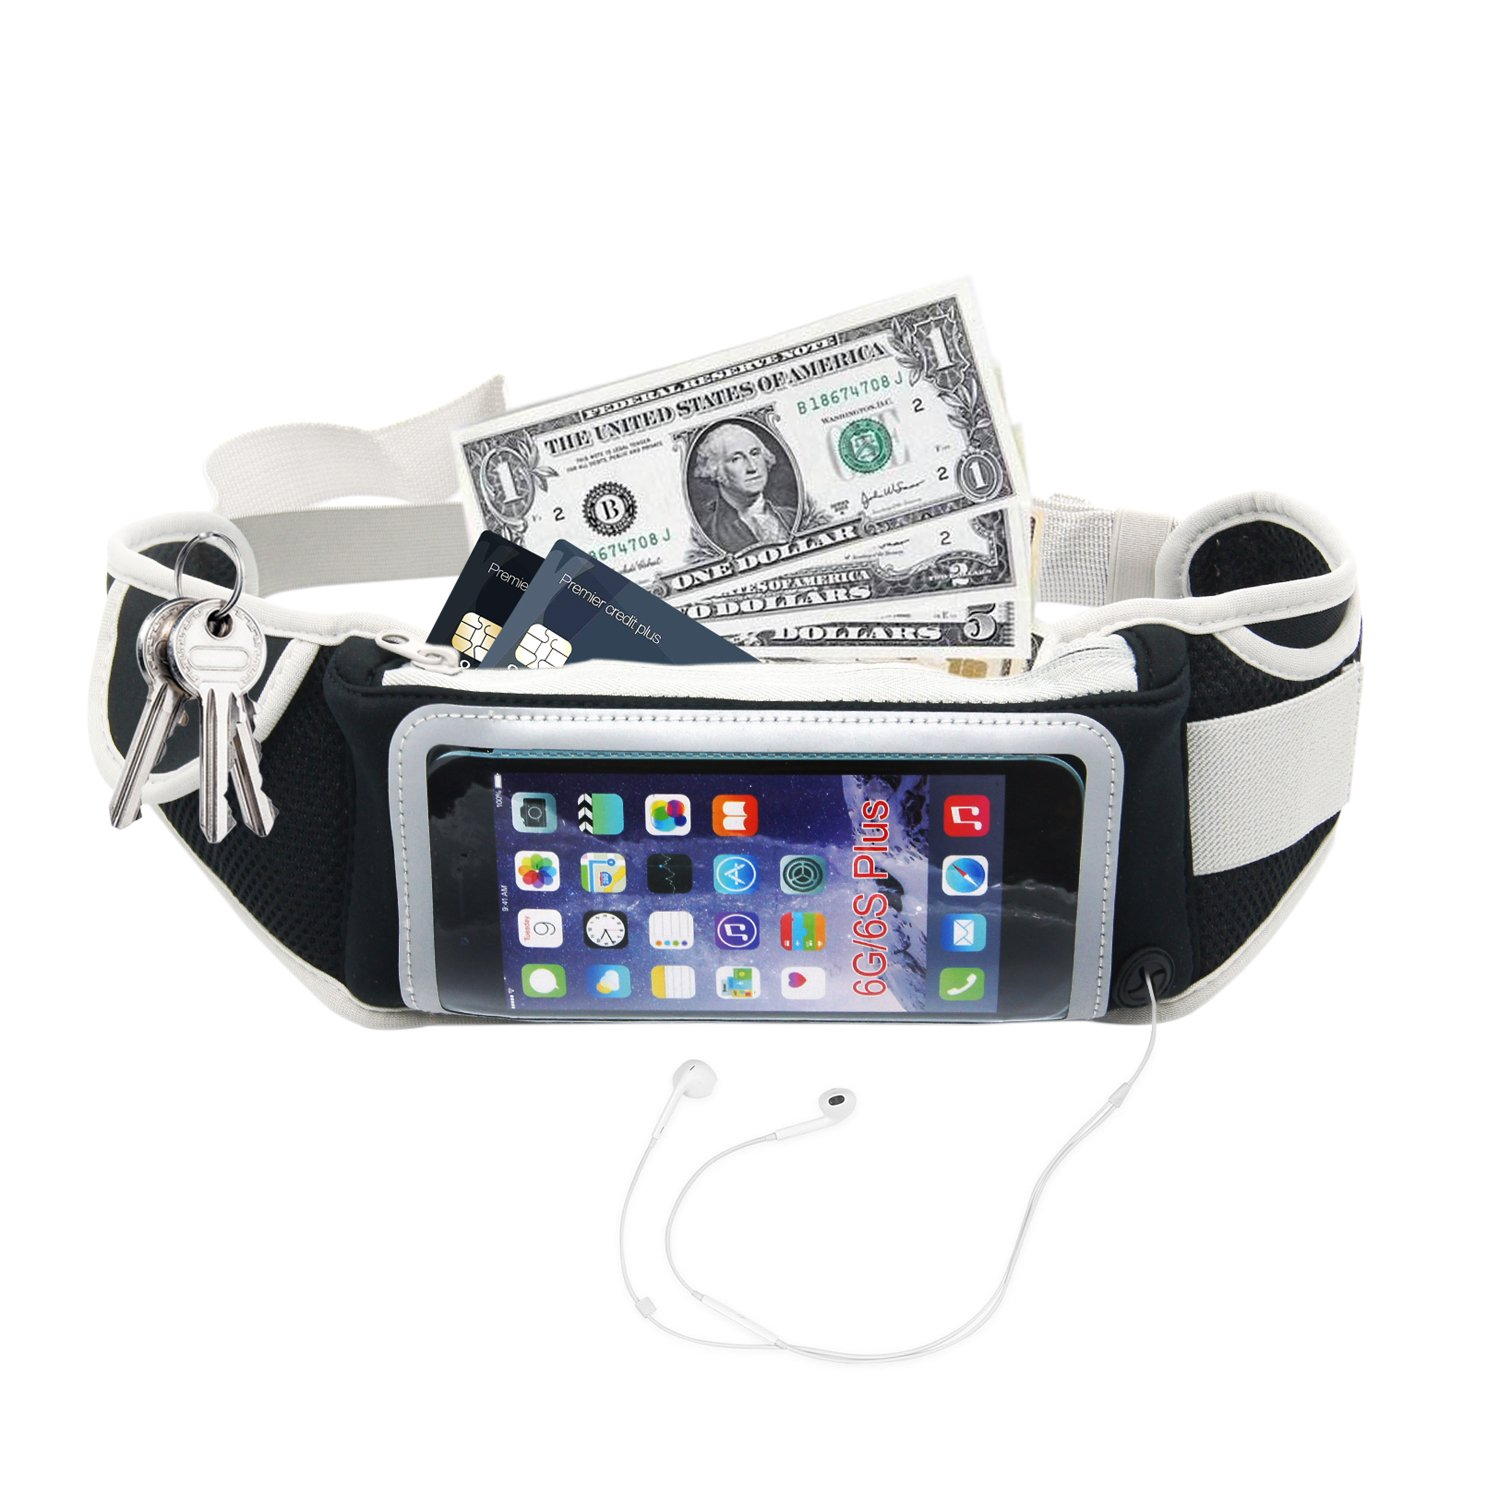 Running Belt Bag with Touchscreen Black Waterproof Slim Fit Belt for Iphone 7/7 Plus 6/6s/6 Plus Size Below 5. 5 inch for Gym Workouts Exercise Cycling Walking Jogging Yoga port, Outdoor Activities